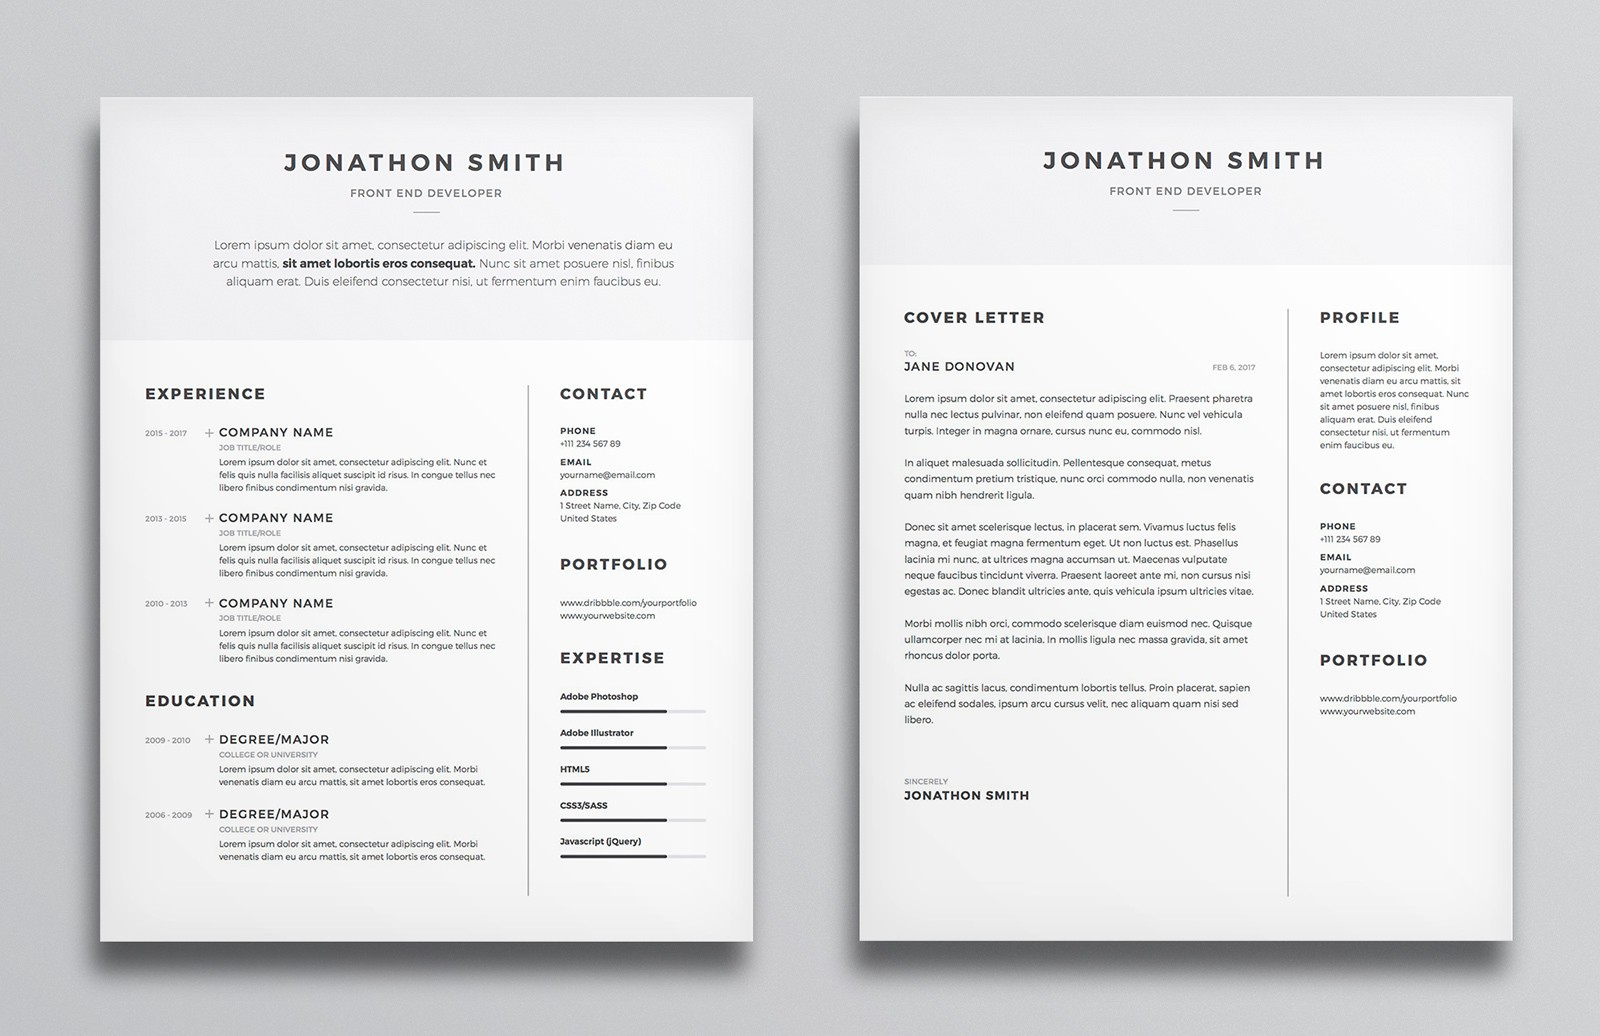 clean resume cv template medialoot large resume cv template preview 2a